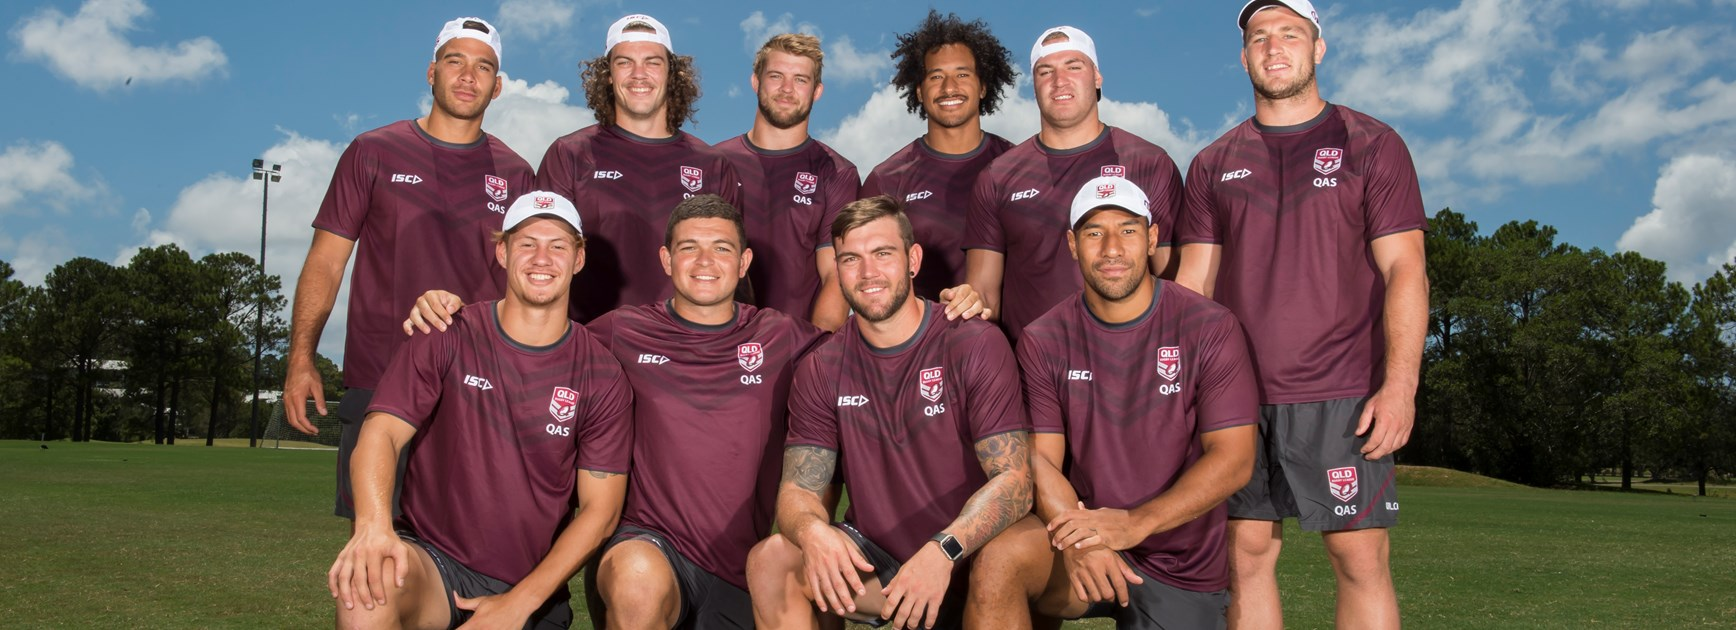 nsw origin team 2019